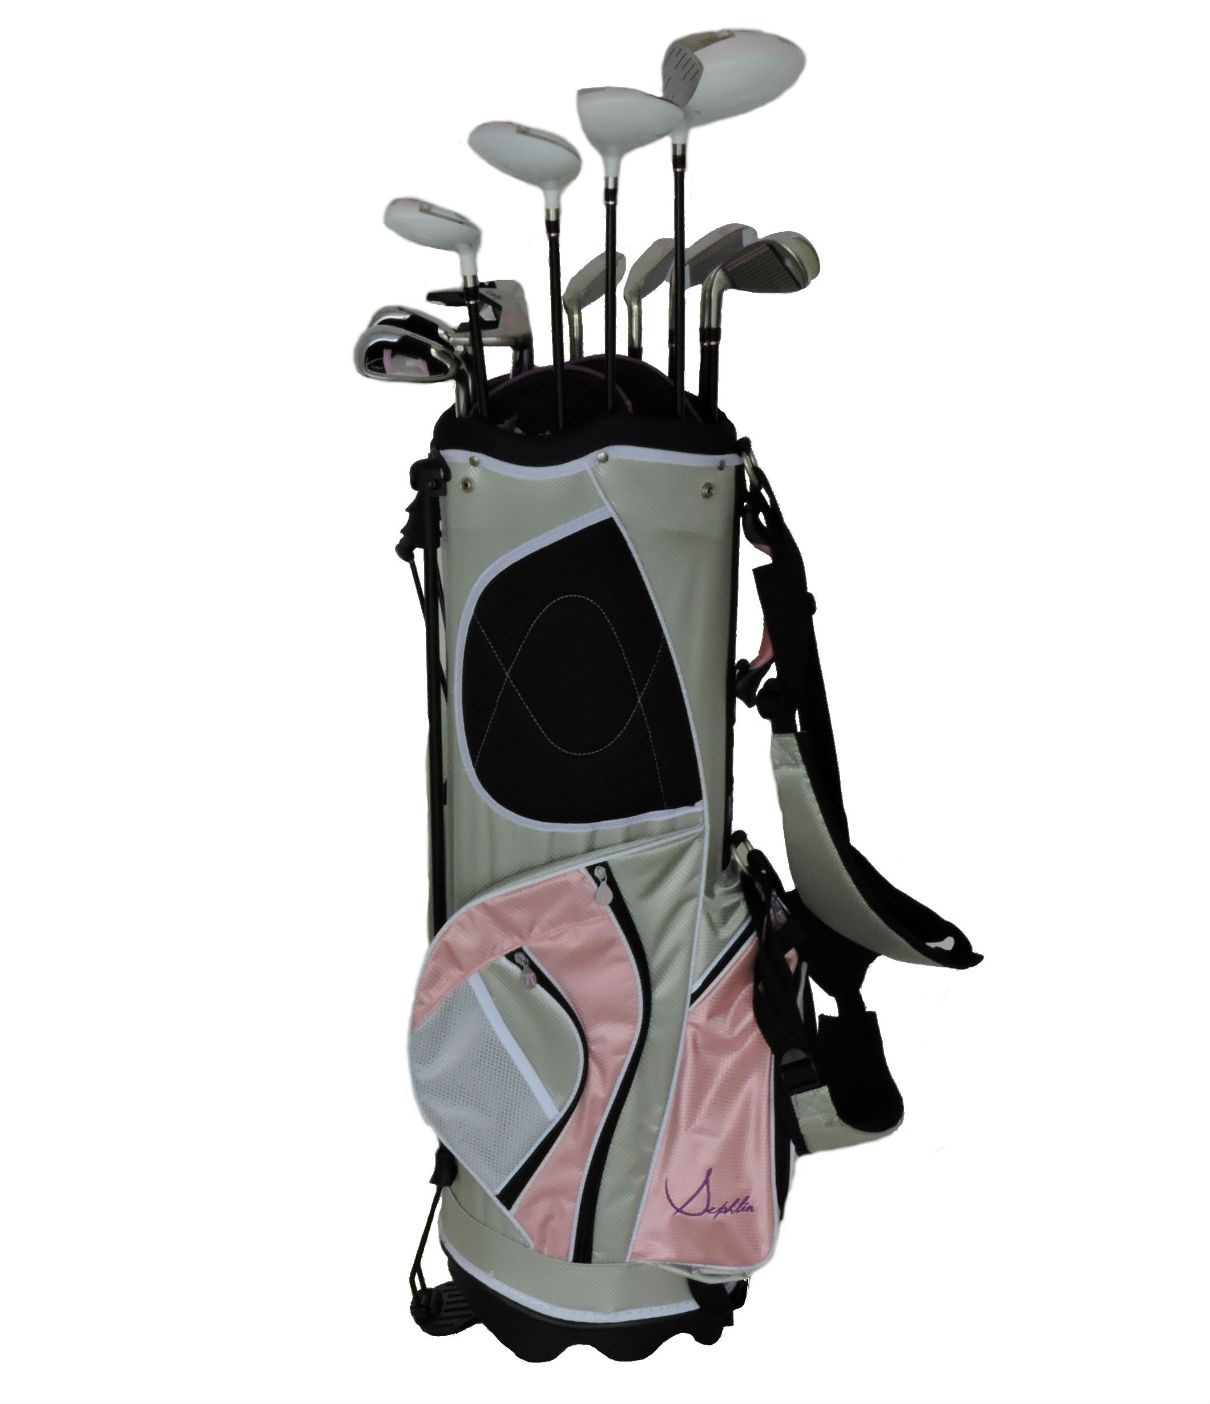 Sephlin Signature Womens Golf Club *13* Pcs Set and Golf Bag RH